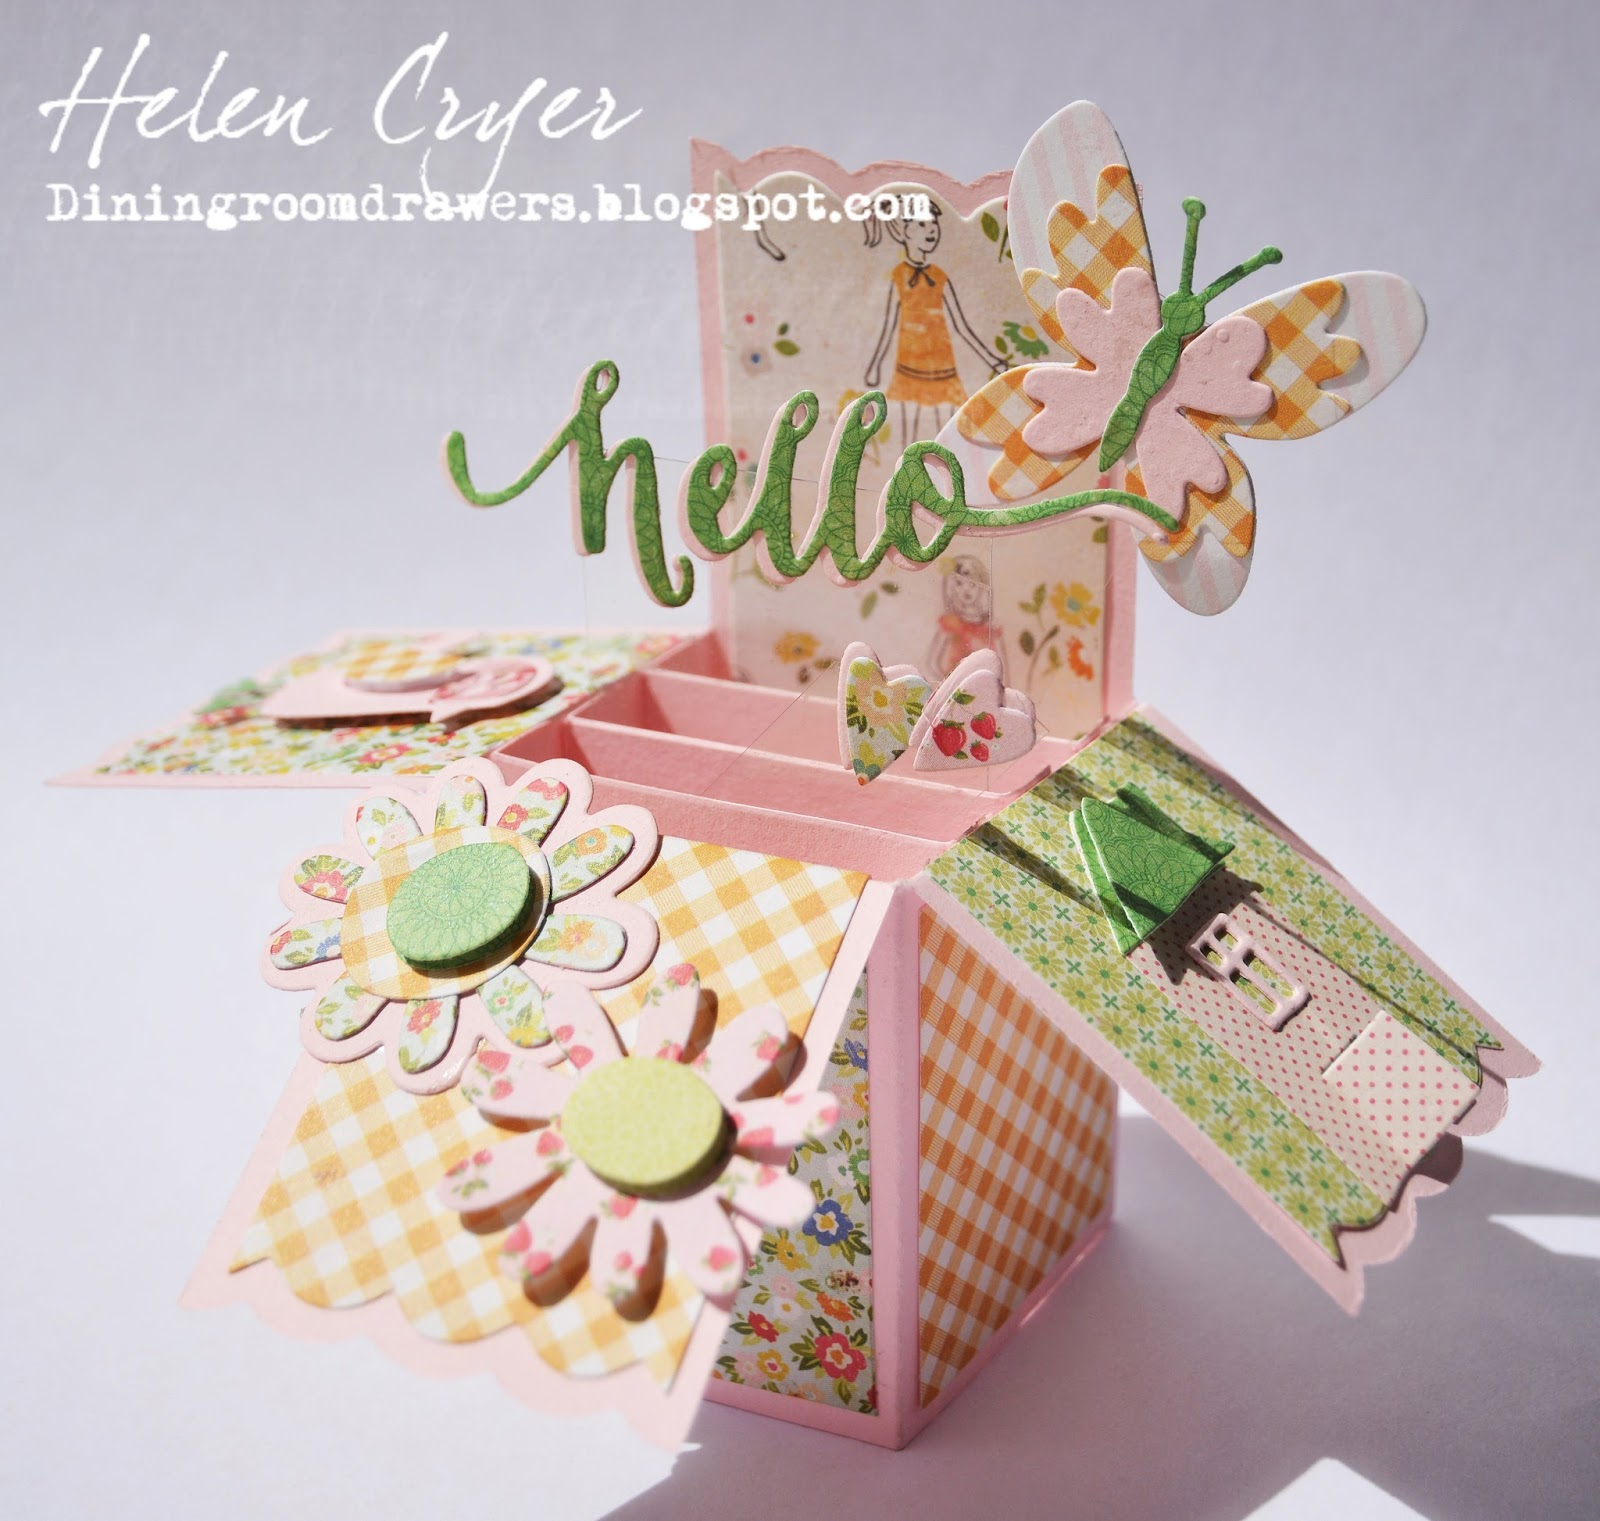 Prächtig The Dining Room Drawers: Sizzix Craft Asylum Dies Card In A Box #KL_44